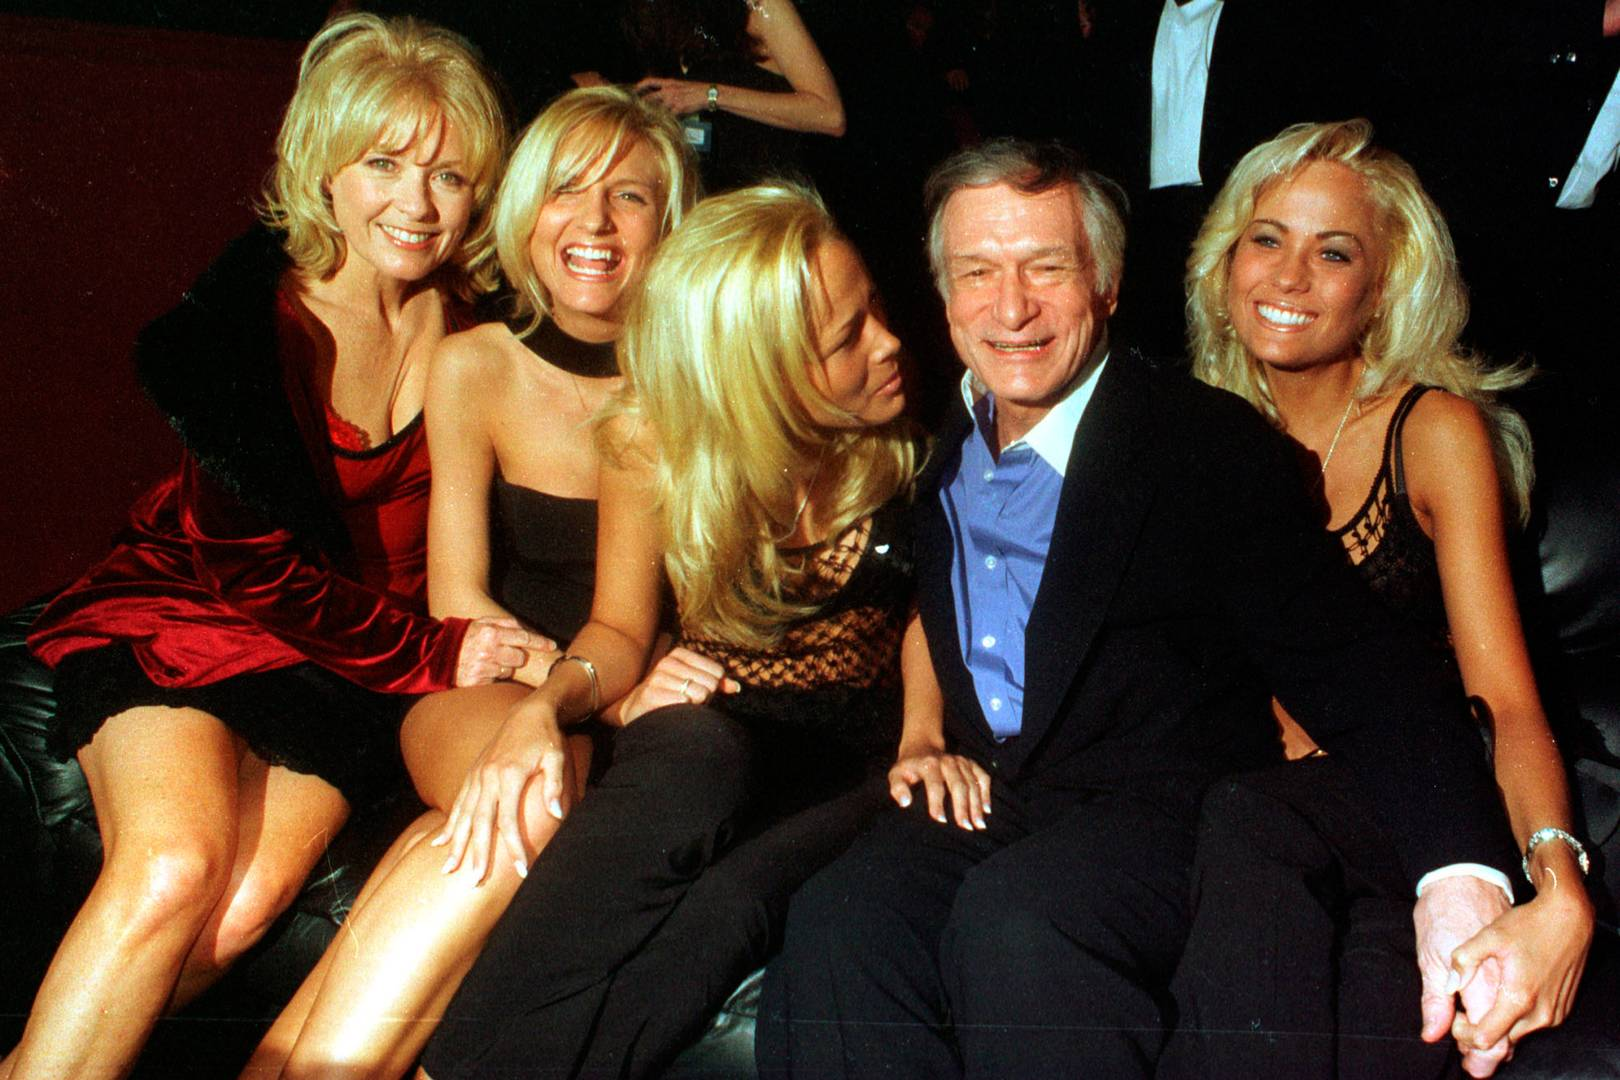 Hugh hefner didnt liberate a generation british